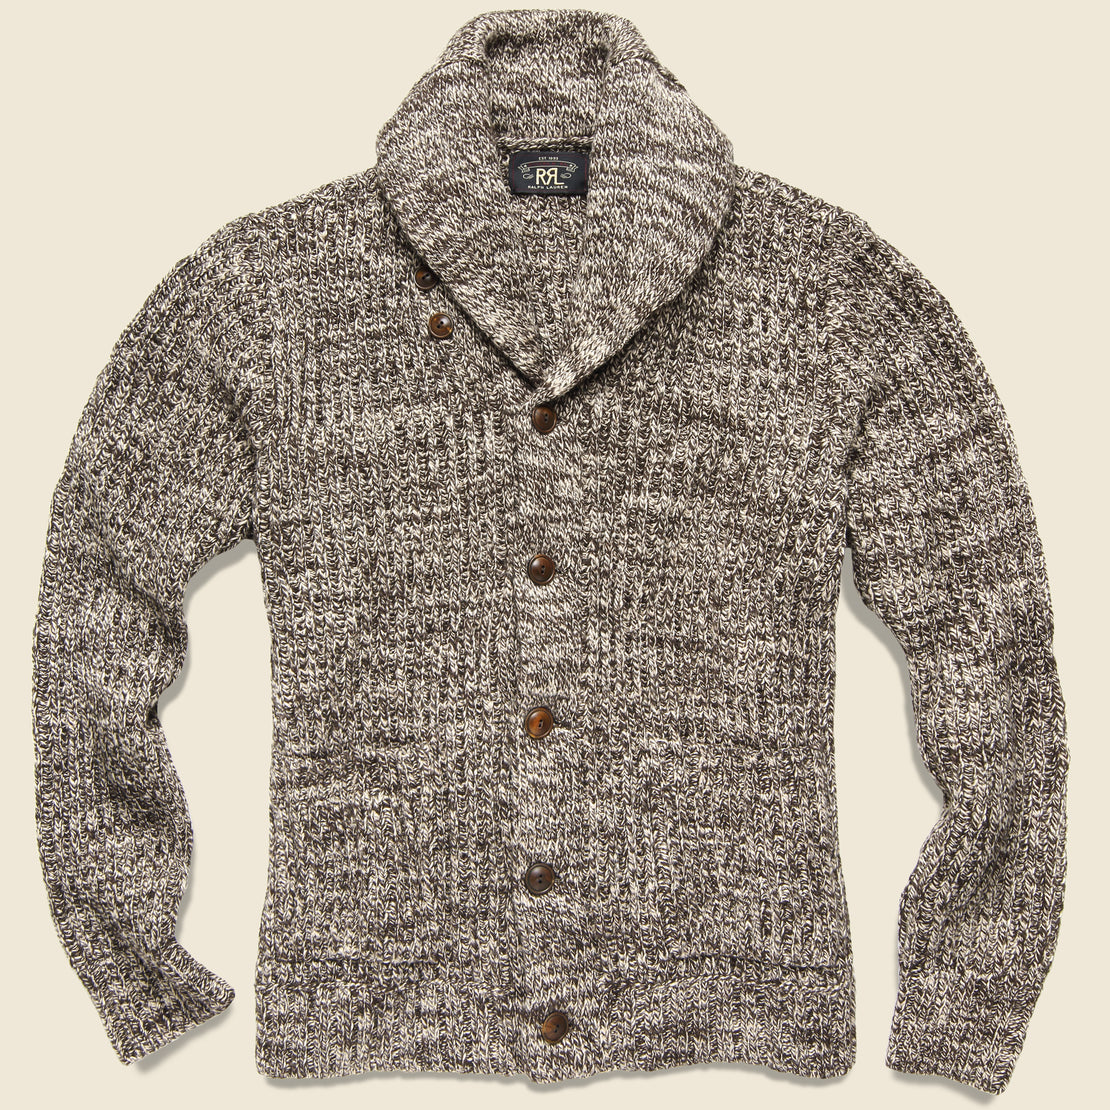 RRL Cotton Shawl-Collar Cardigan - Brown Cream Marl